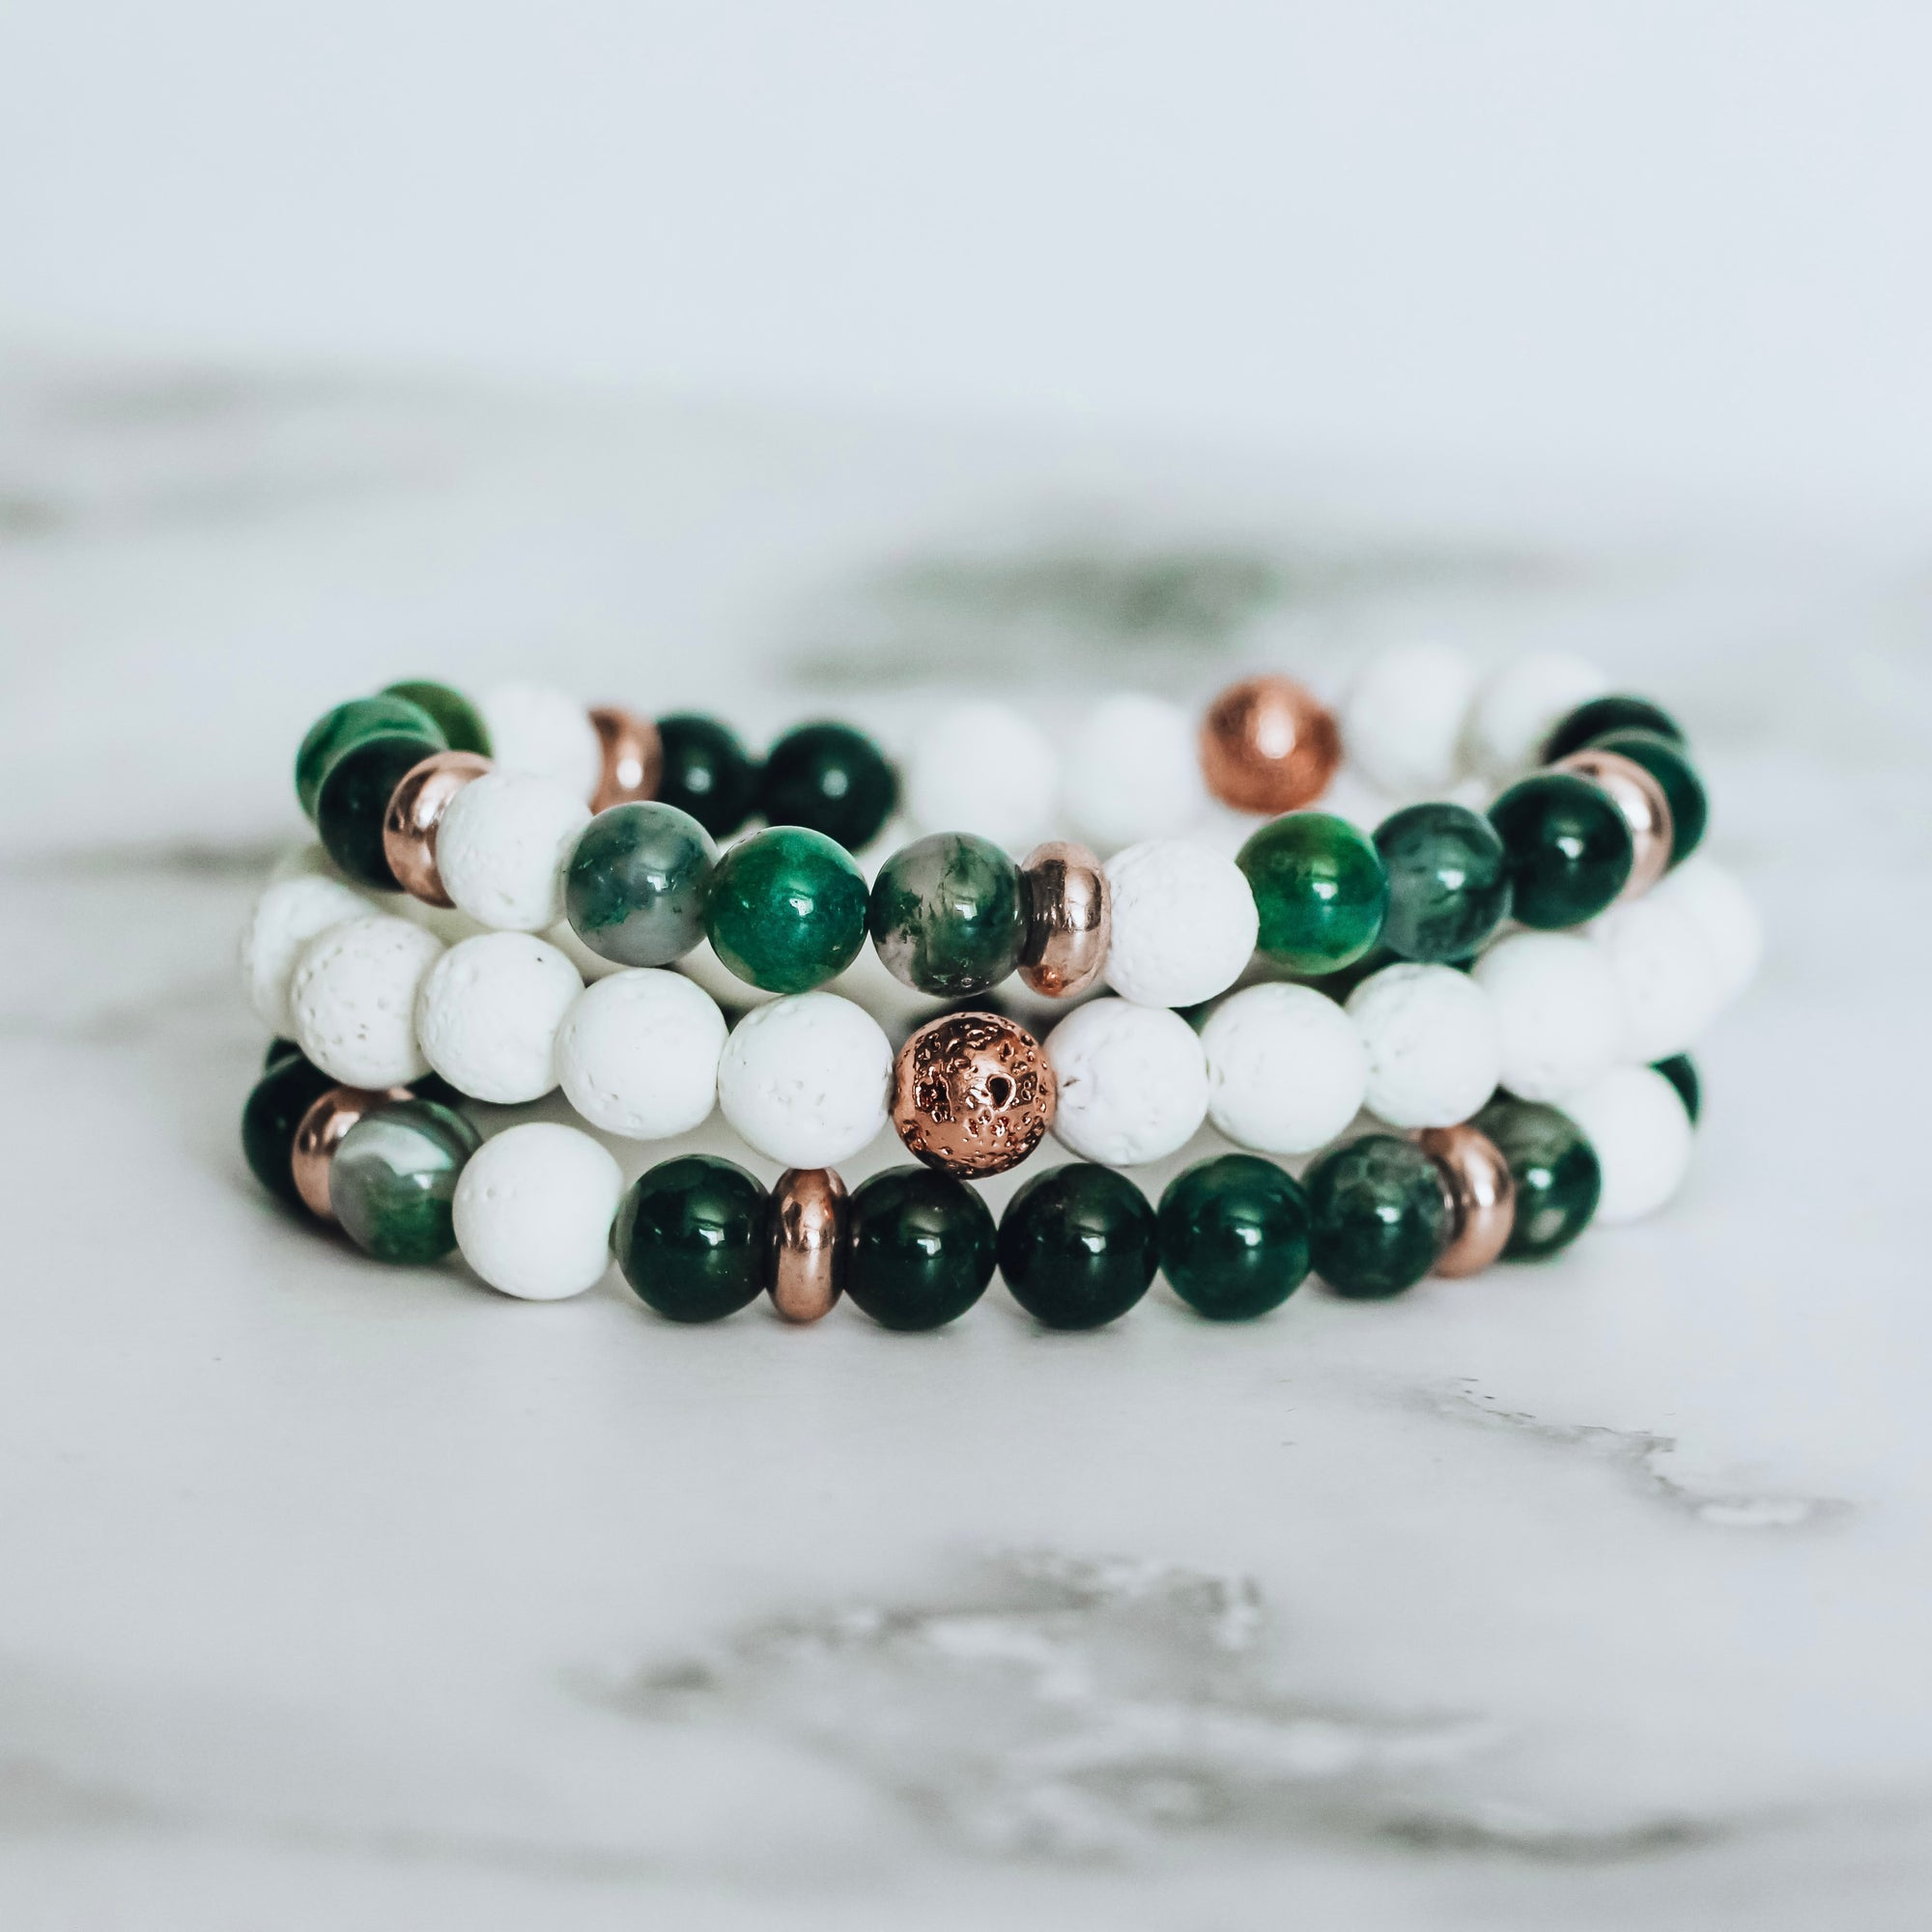 moss agate bracelet, moss agate jewelry, gemstone jewelry, gemstone bracelets, anxiety bracelet, forest bathing bracelets, forest bathing tools, gemstone bracelet, gemstone jewelry, crystal jewelry